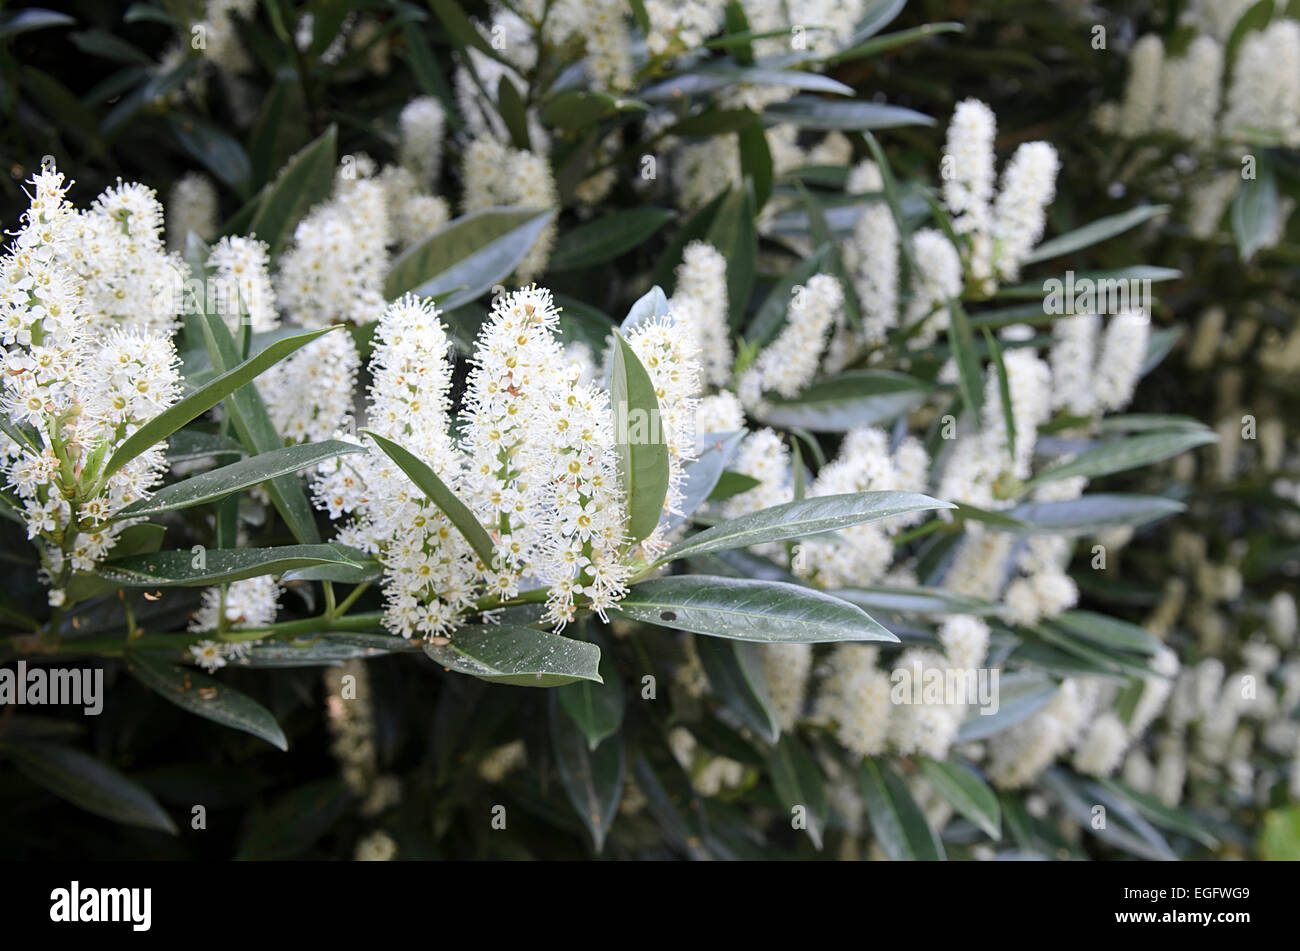 Prunus laurocerasus common laurel in flower - Stock Image